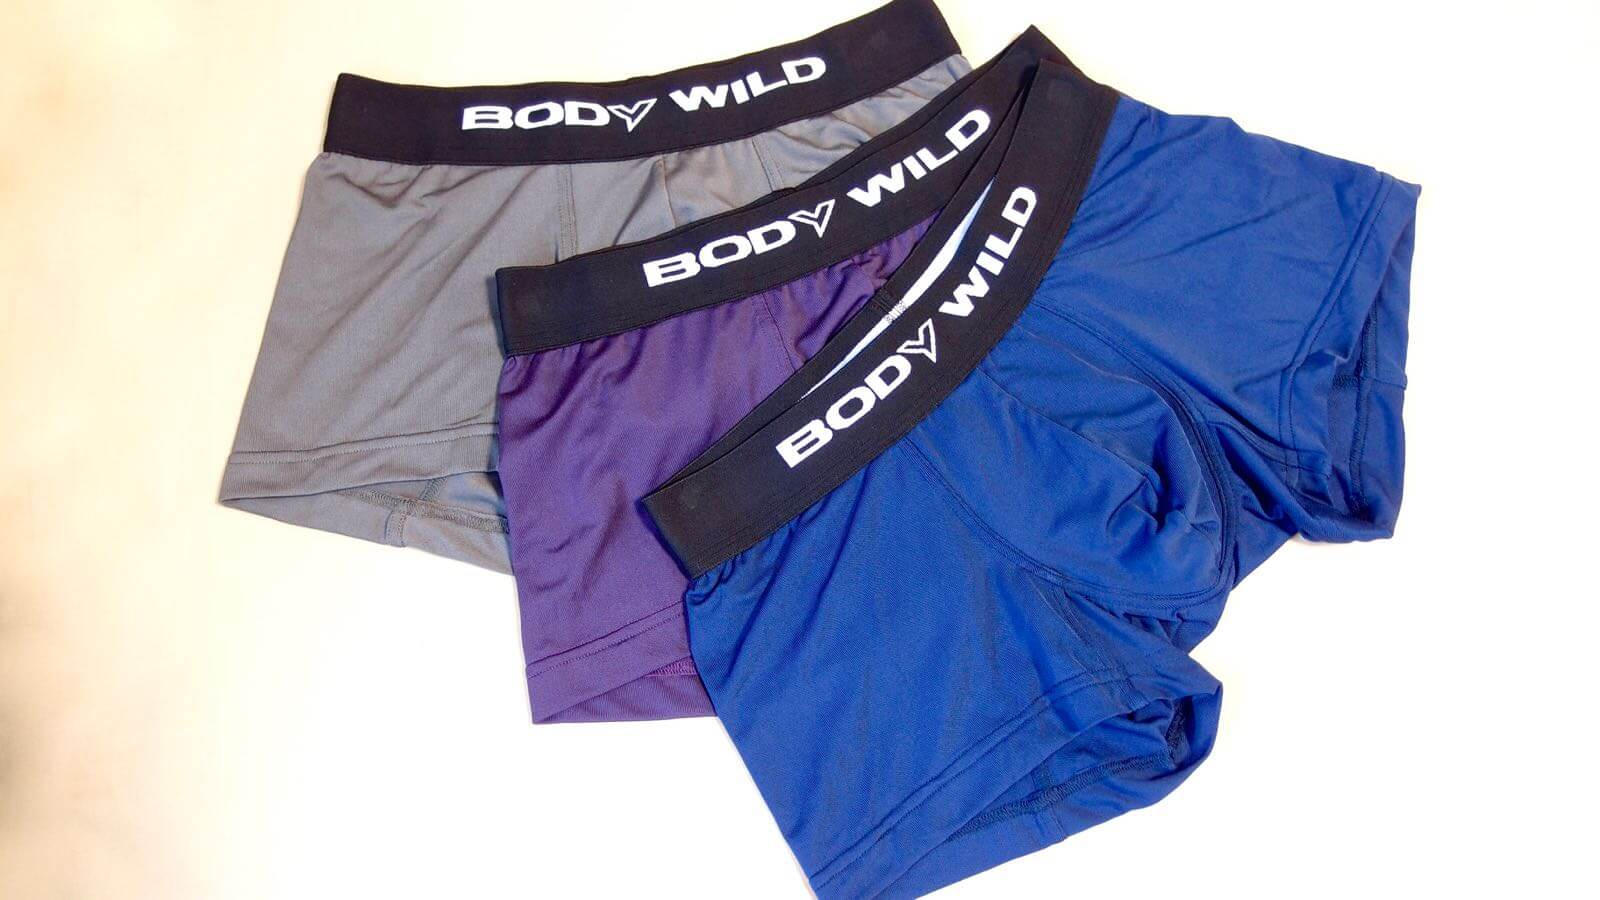 0122 Fashionable underwear BODY WILD is recommended 08